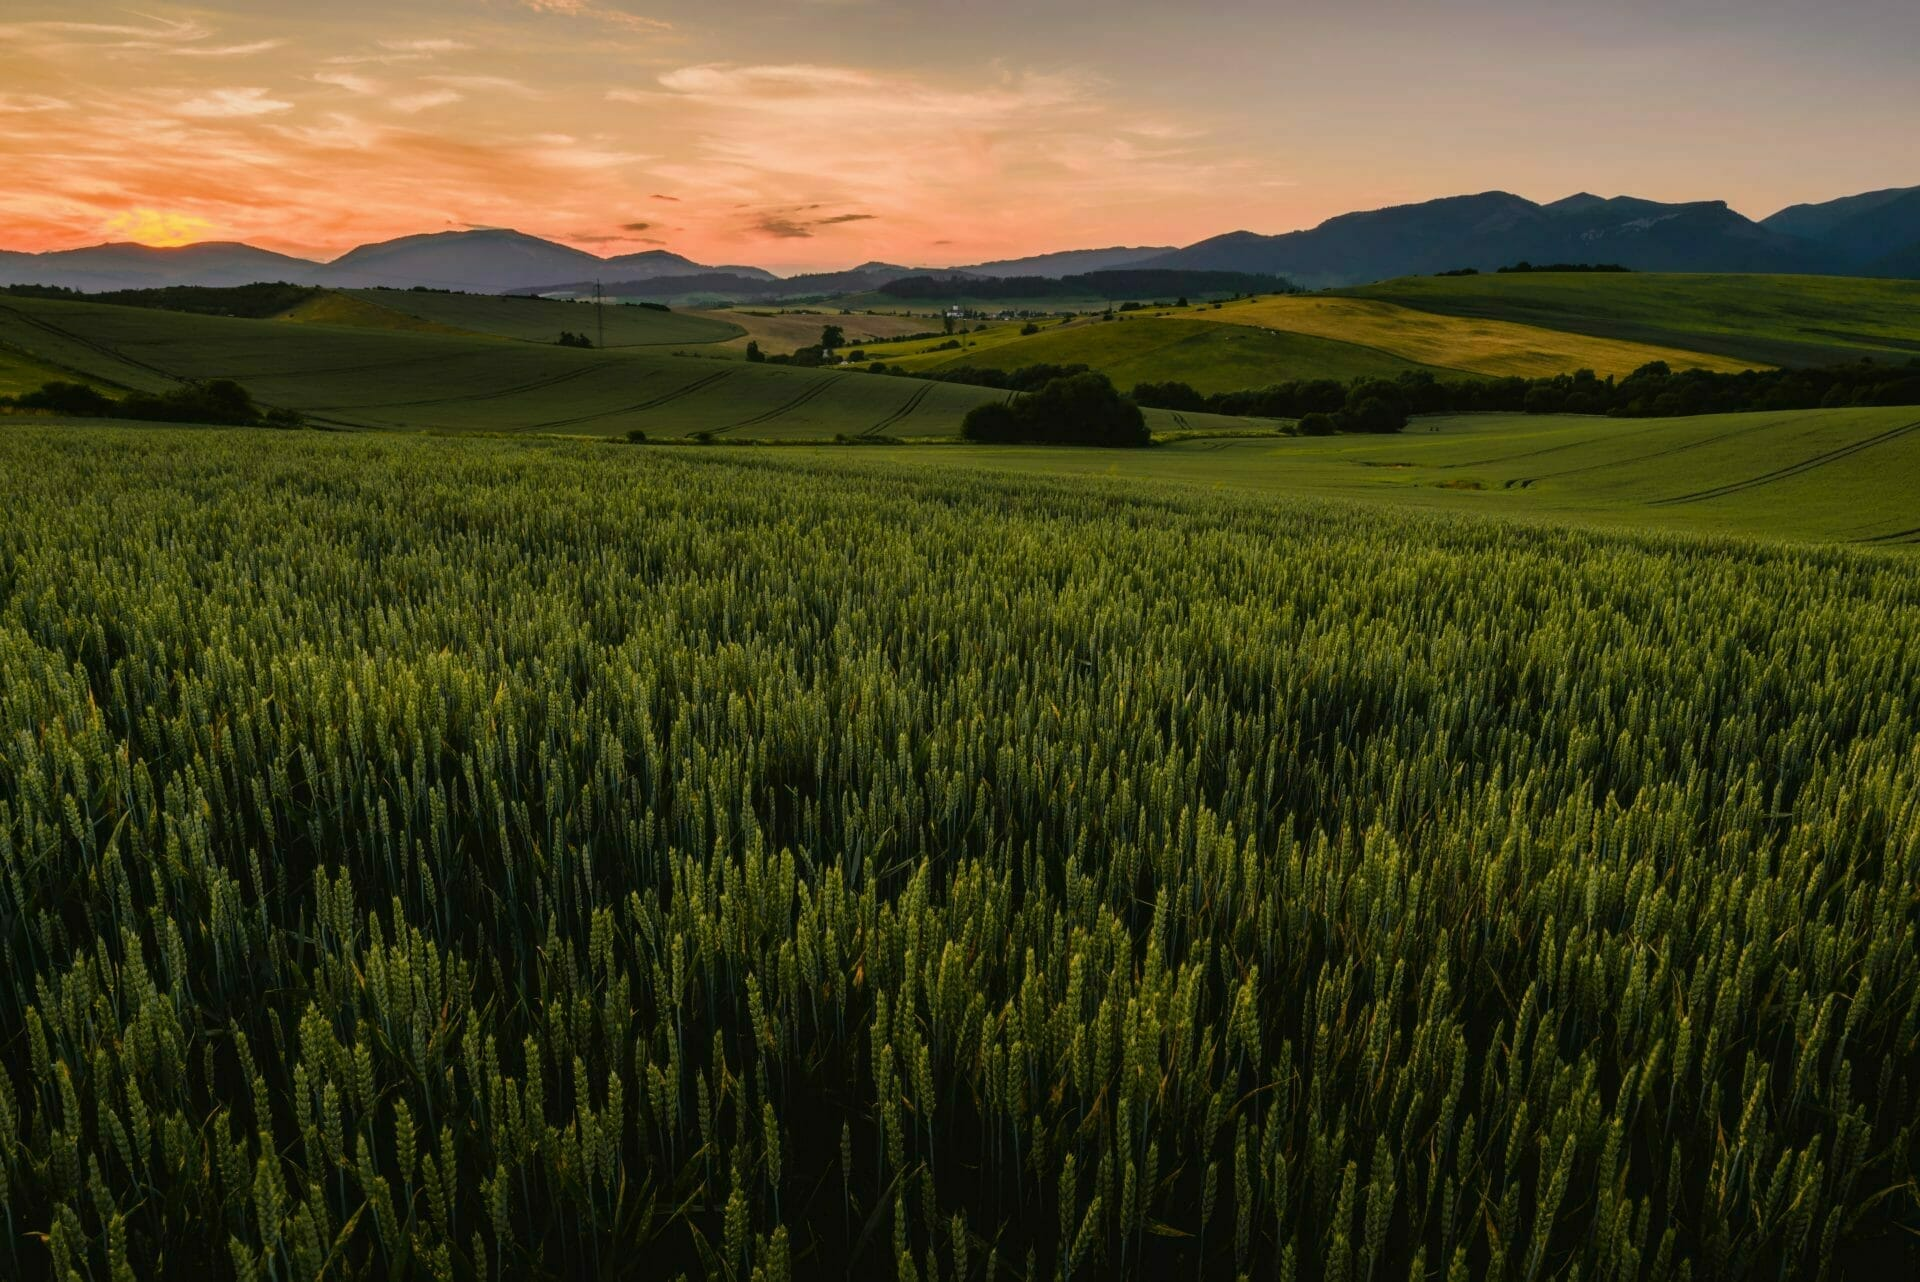 picture of grassy field and farm land for Real Estate News for Investors Podcast Episode #590